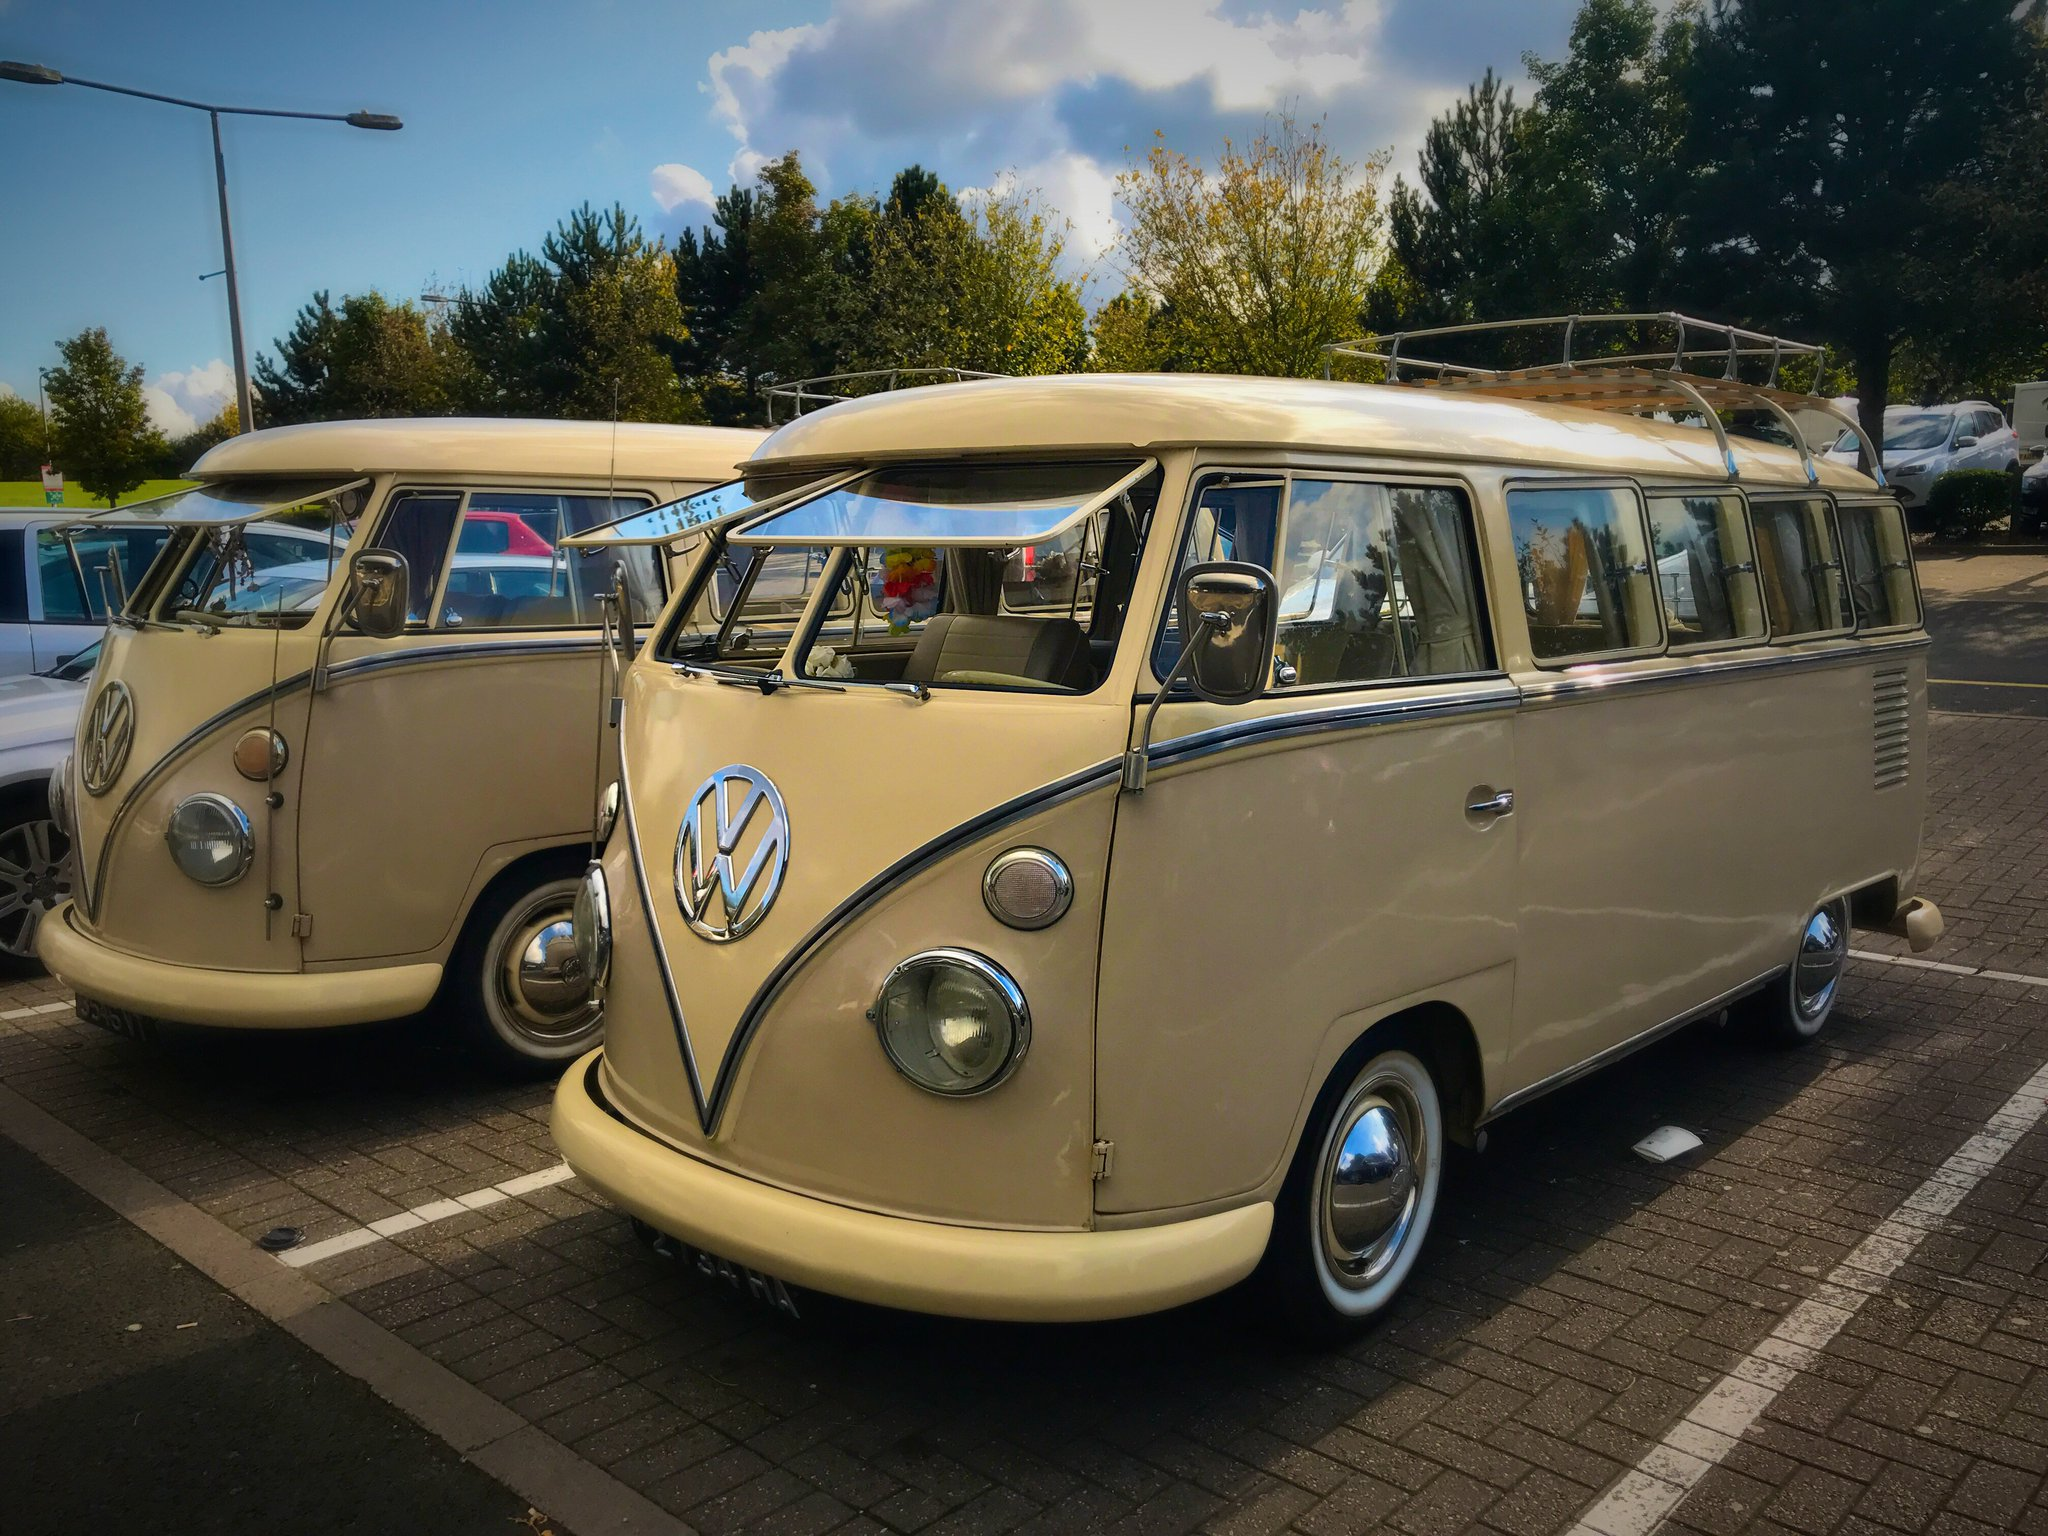 Saw these two beauties parked next to each other at a services today #classics #vwbus https://t.co/DEExHu55iA